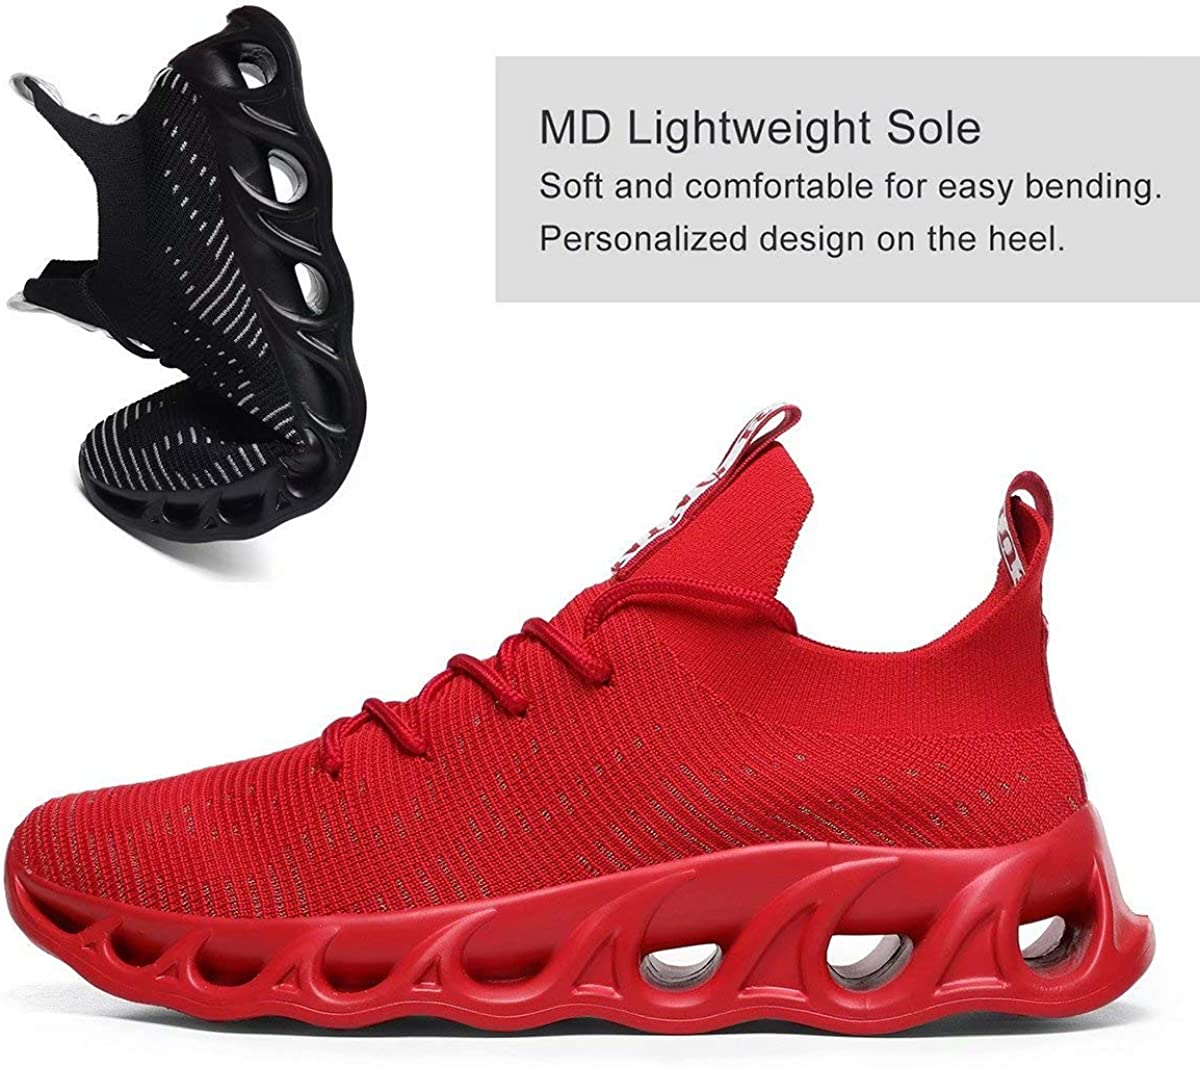 Wrezatro Shoes Running Men Lightweight Casual Walking Breathable Gym Workout Athletic Tennis Sneakers